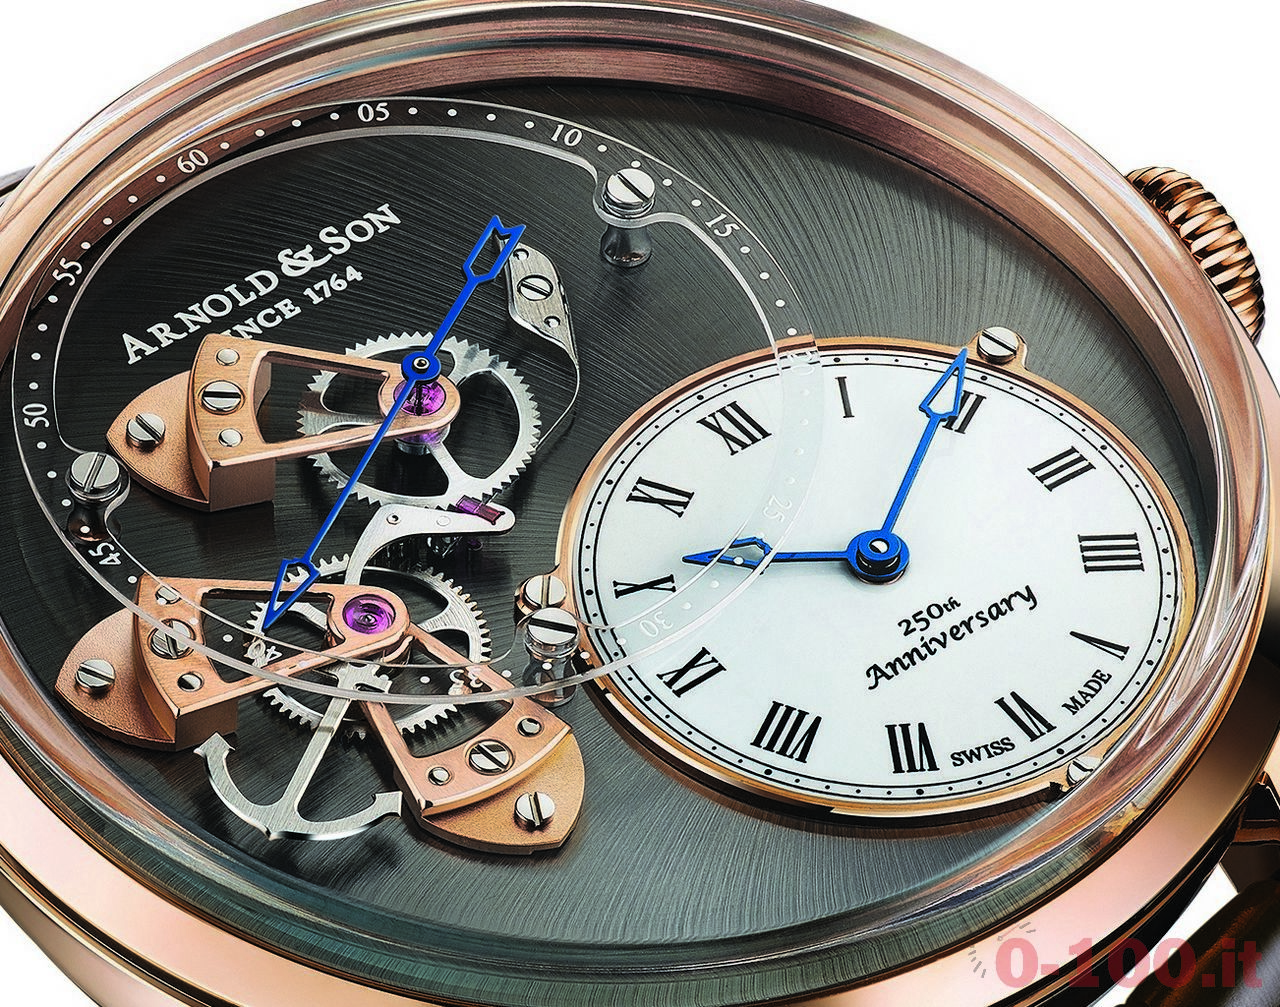 anteprima-baselworld-2015-arnold-son-instrument-collection-dstb-limited-edition_0-100_3